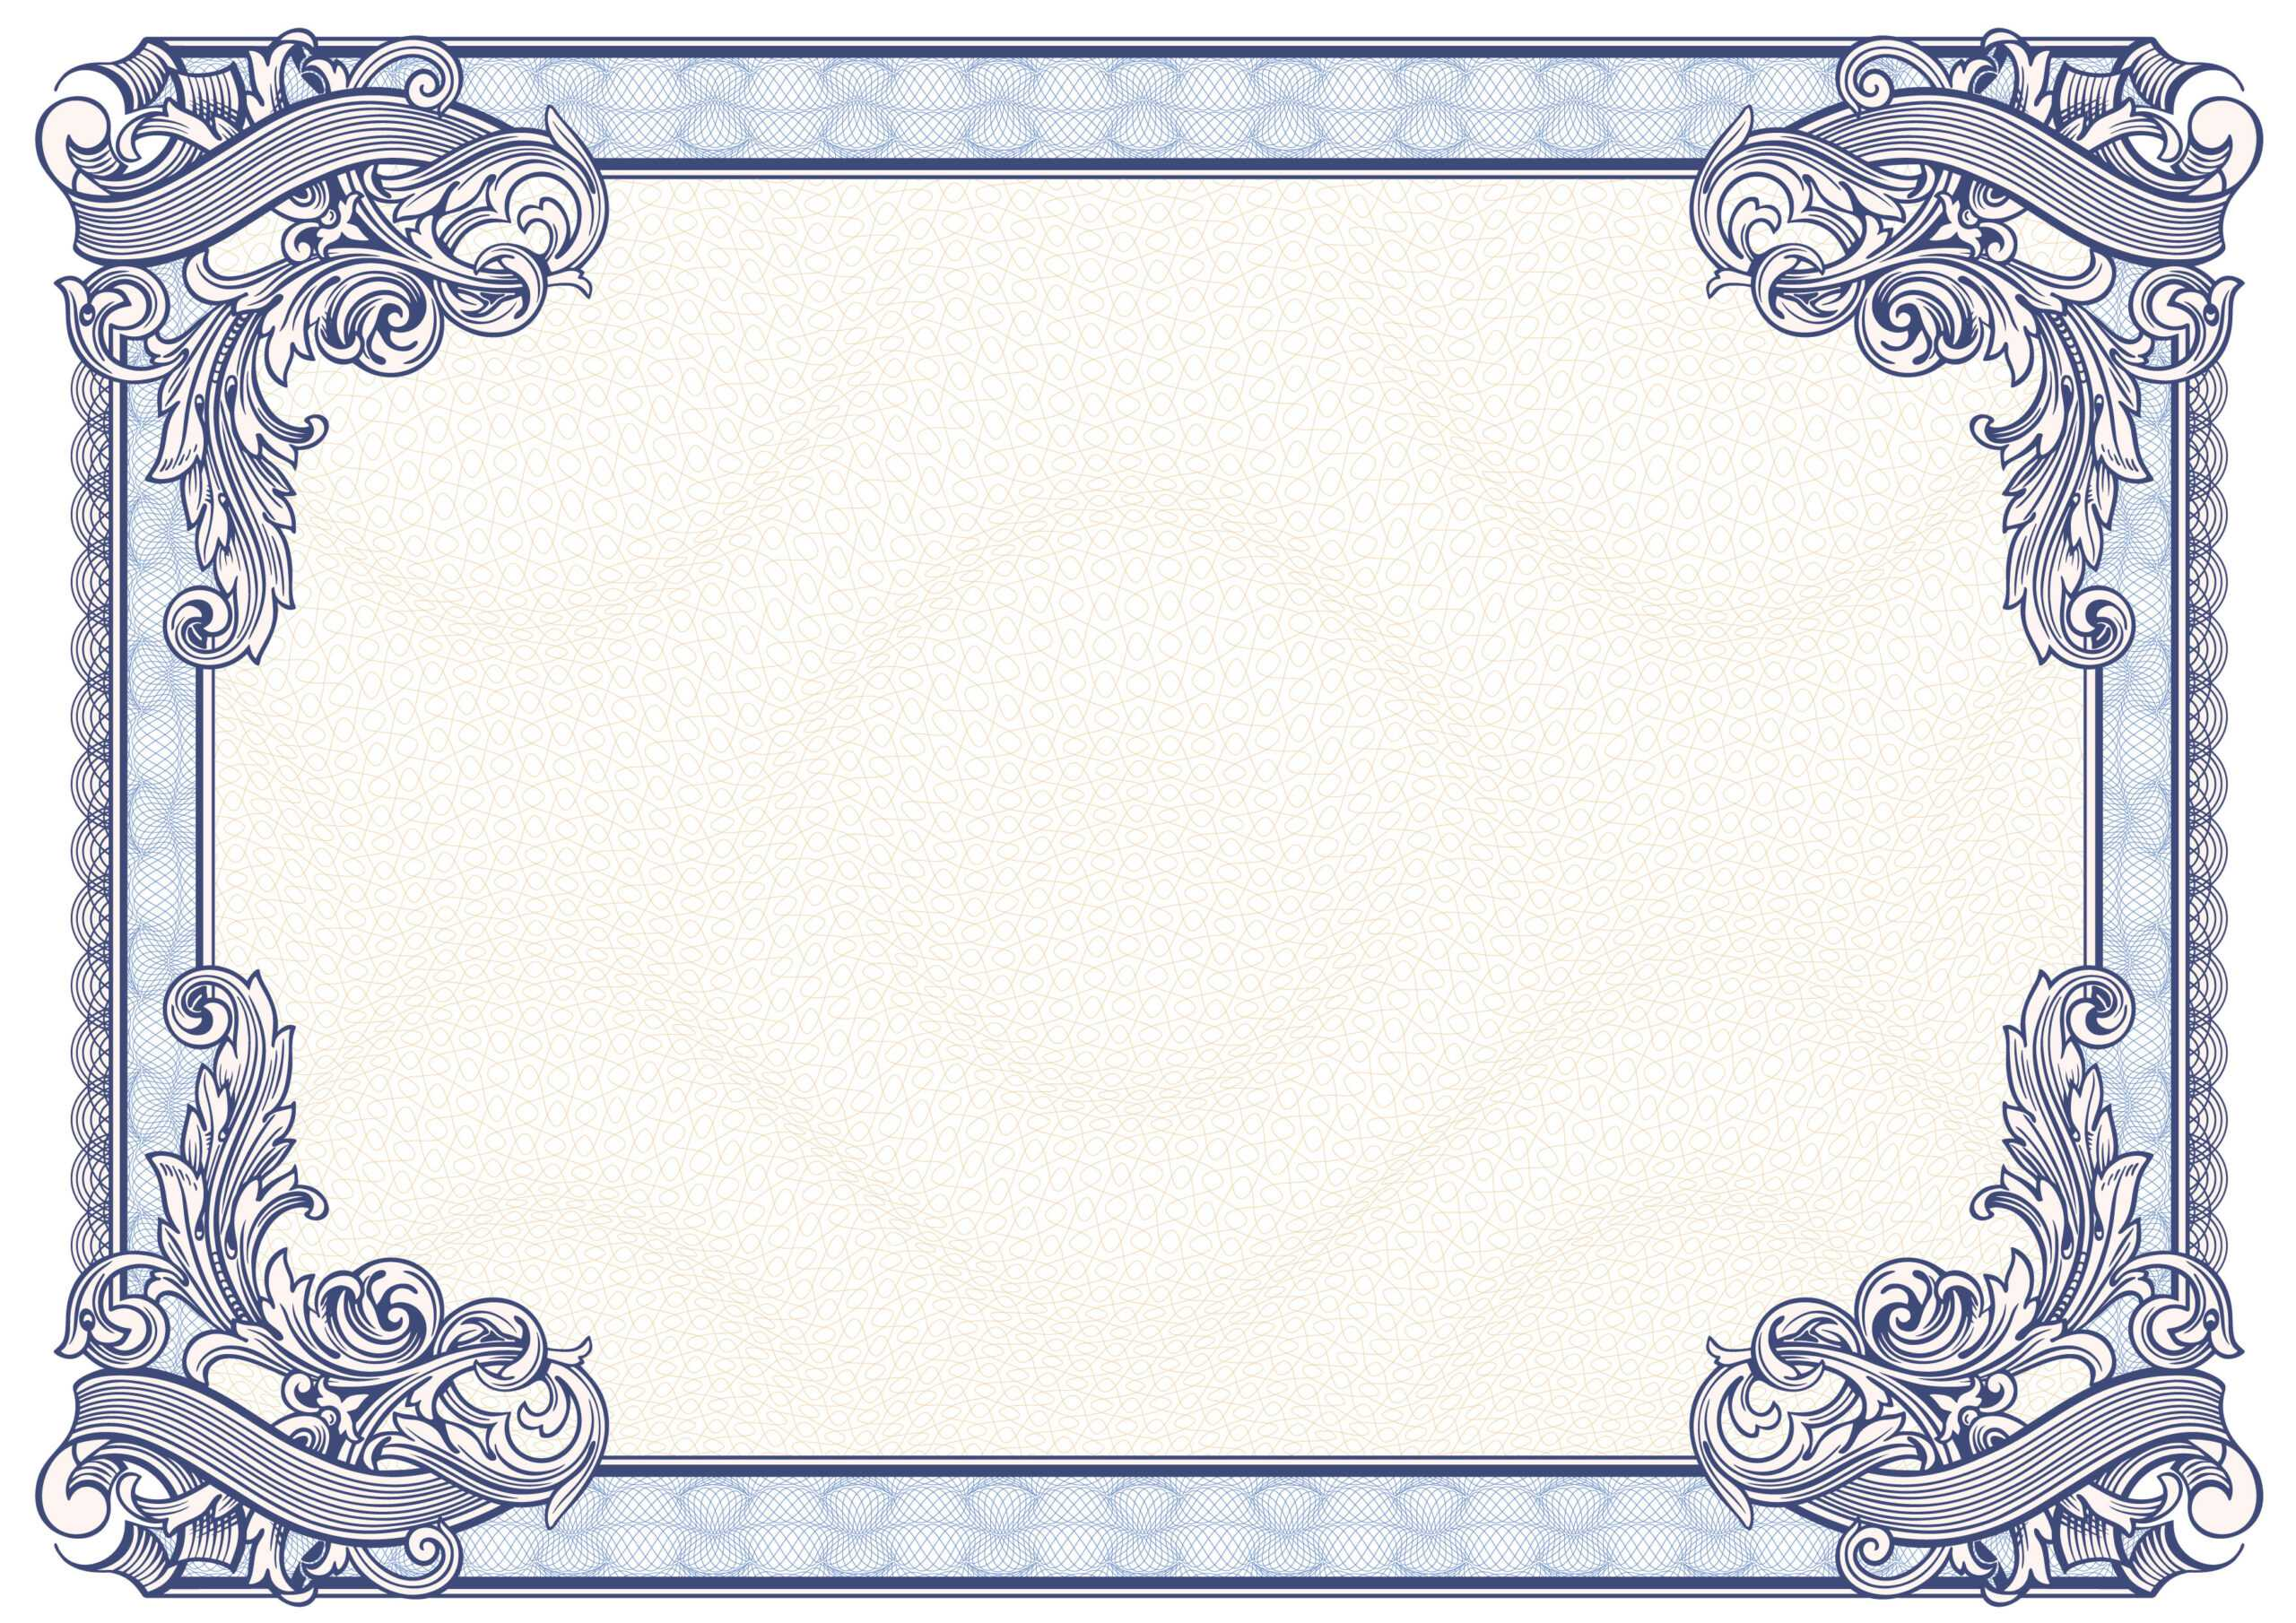 Certificate Border Vector Free At Getdrawings | Free For Pertaining To Award Certificate Border Template